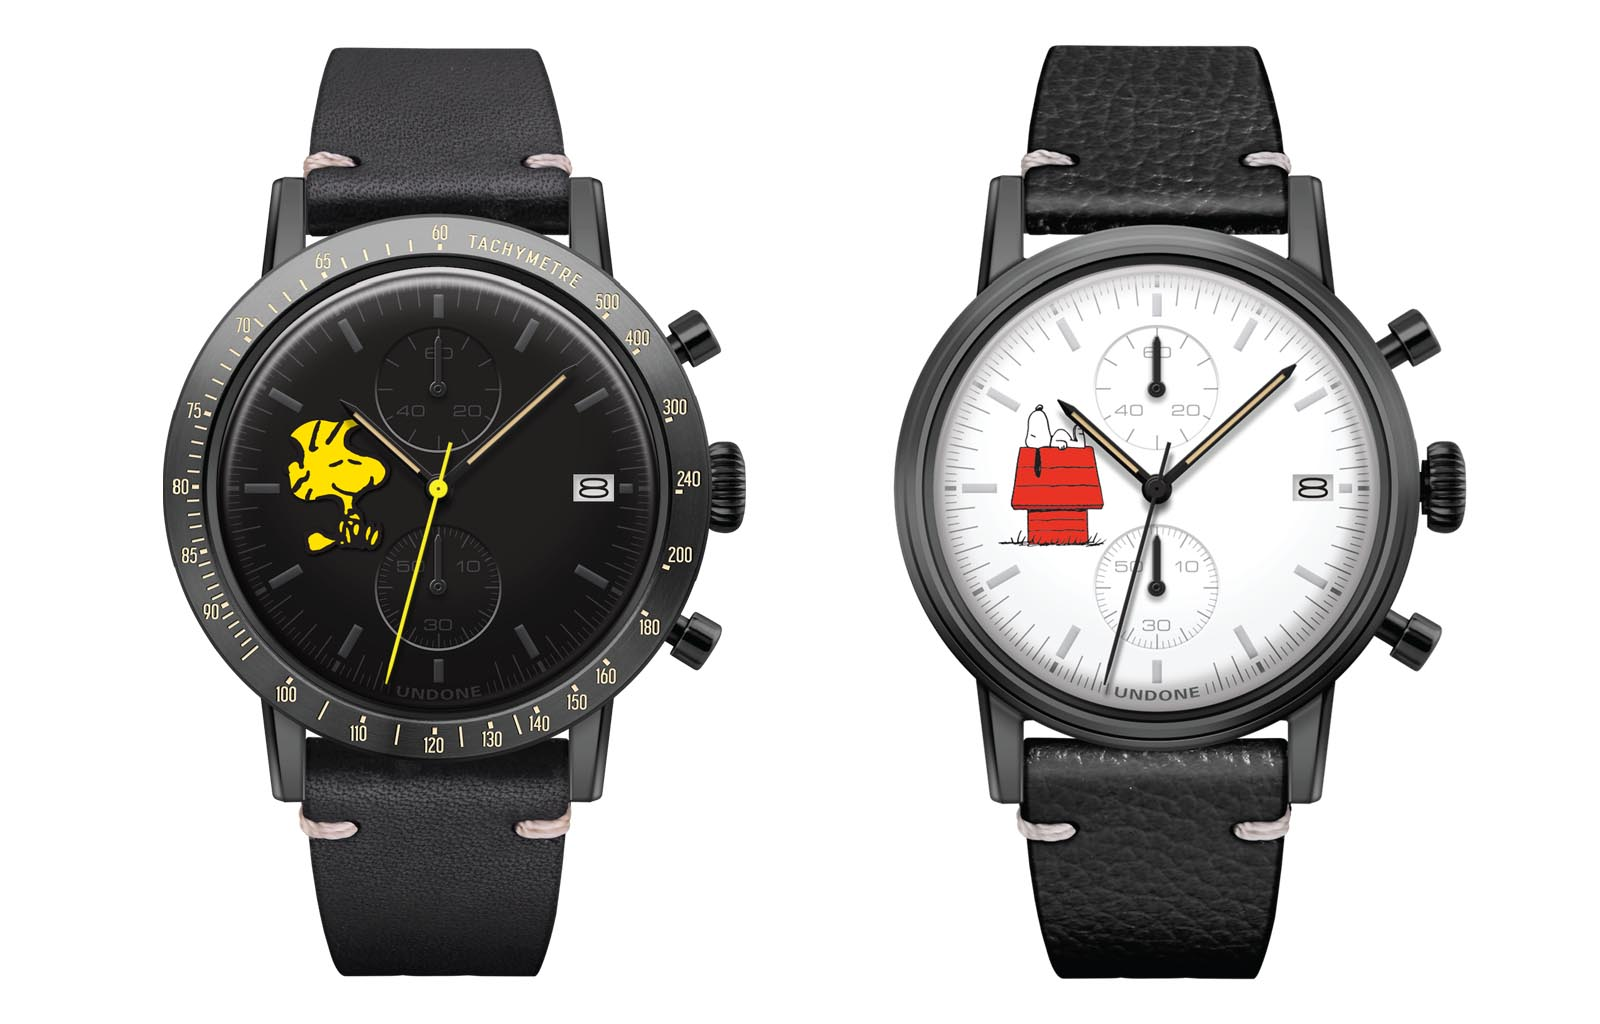 Undone Peanuts Urban One World Chronograph Macau